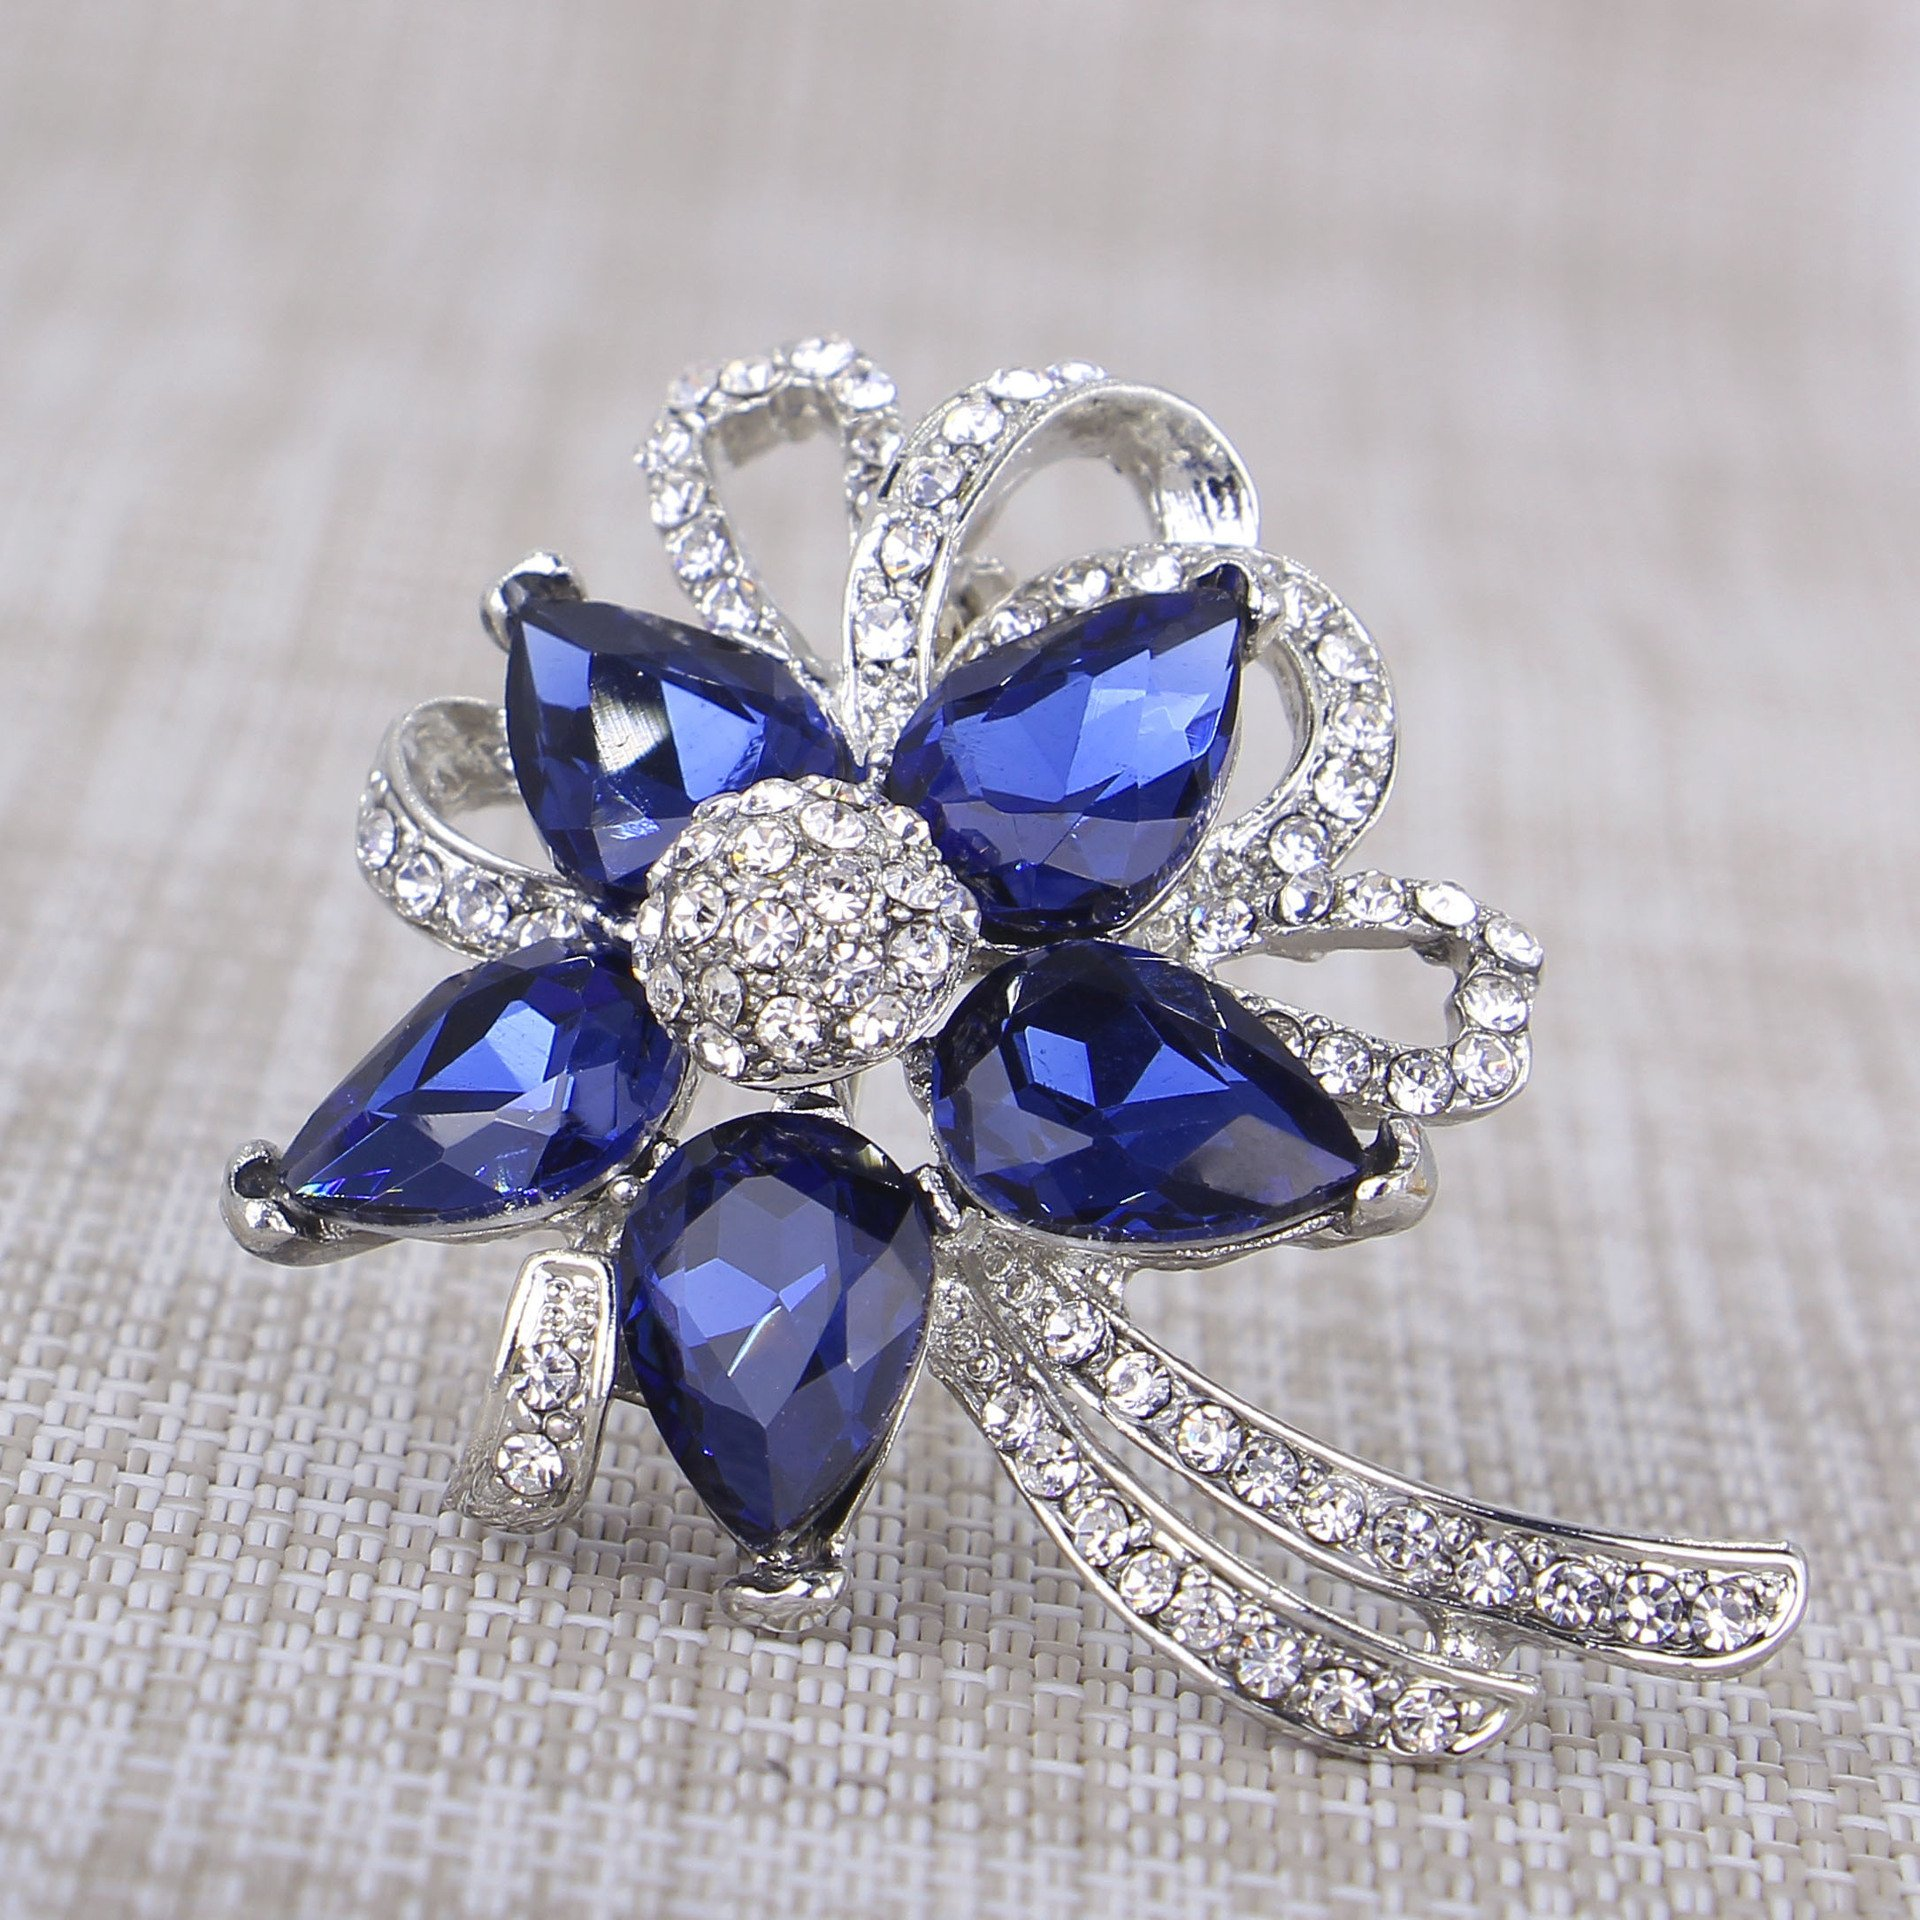 Jewelei Fashion Crystal 925 Sterling Silver Brooches Pins Scarf Clips for Wedding/Dailywear/Banquet by Jewelei (Image #4)